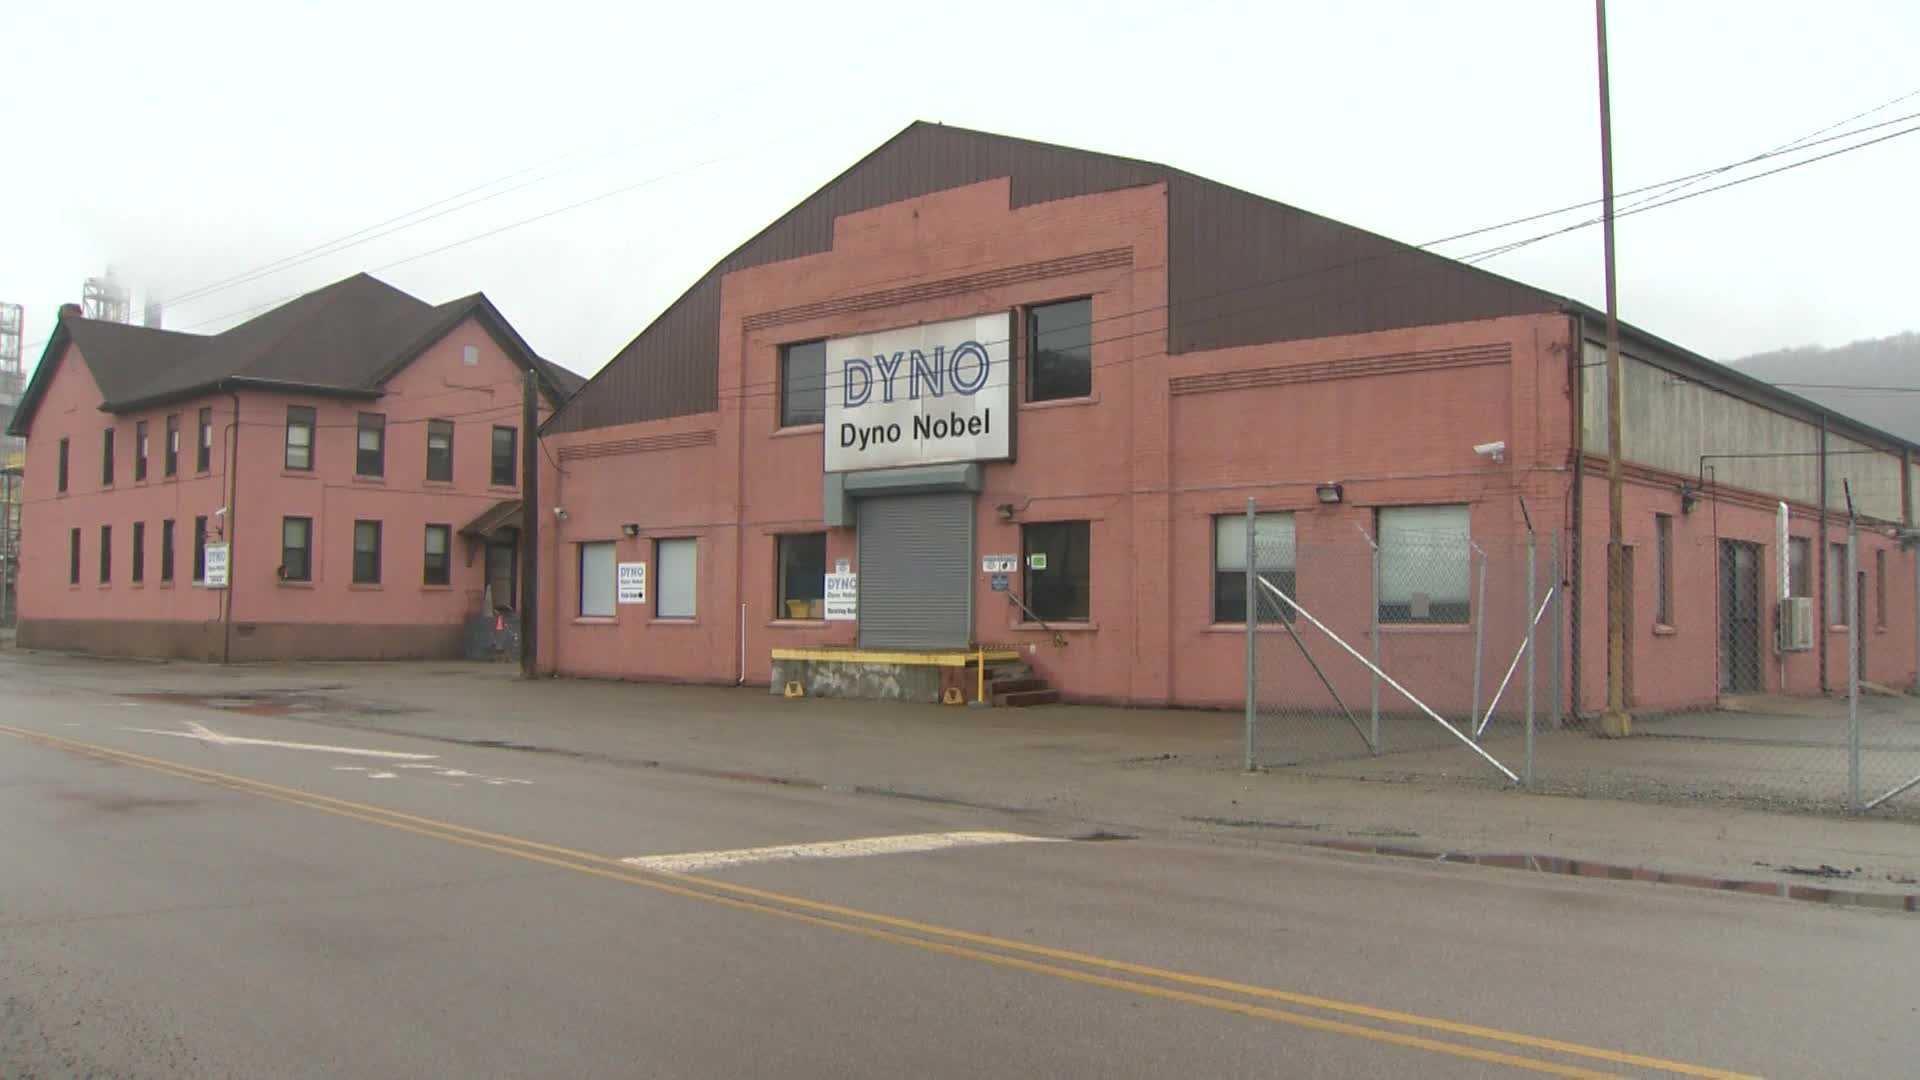 Dyno Nobel will discontinue production at its Donora plant.